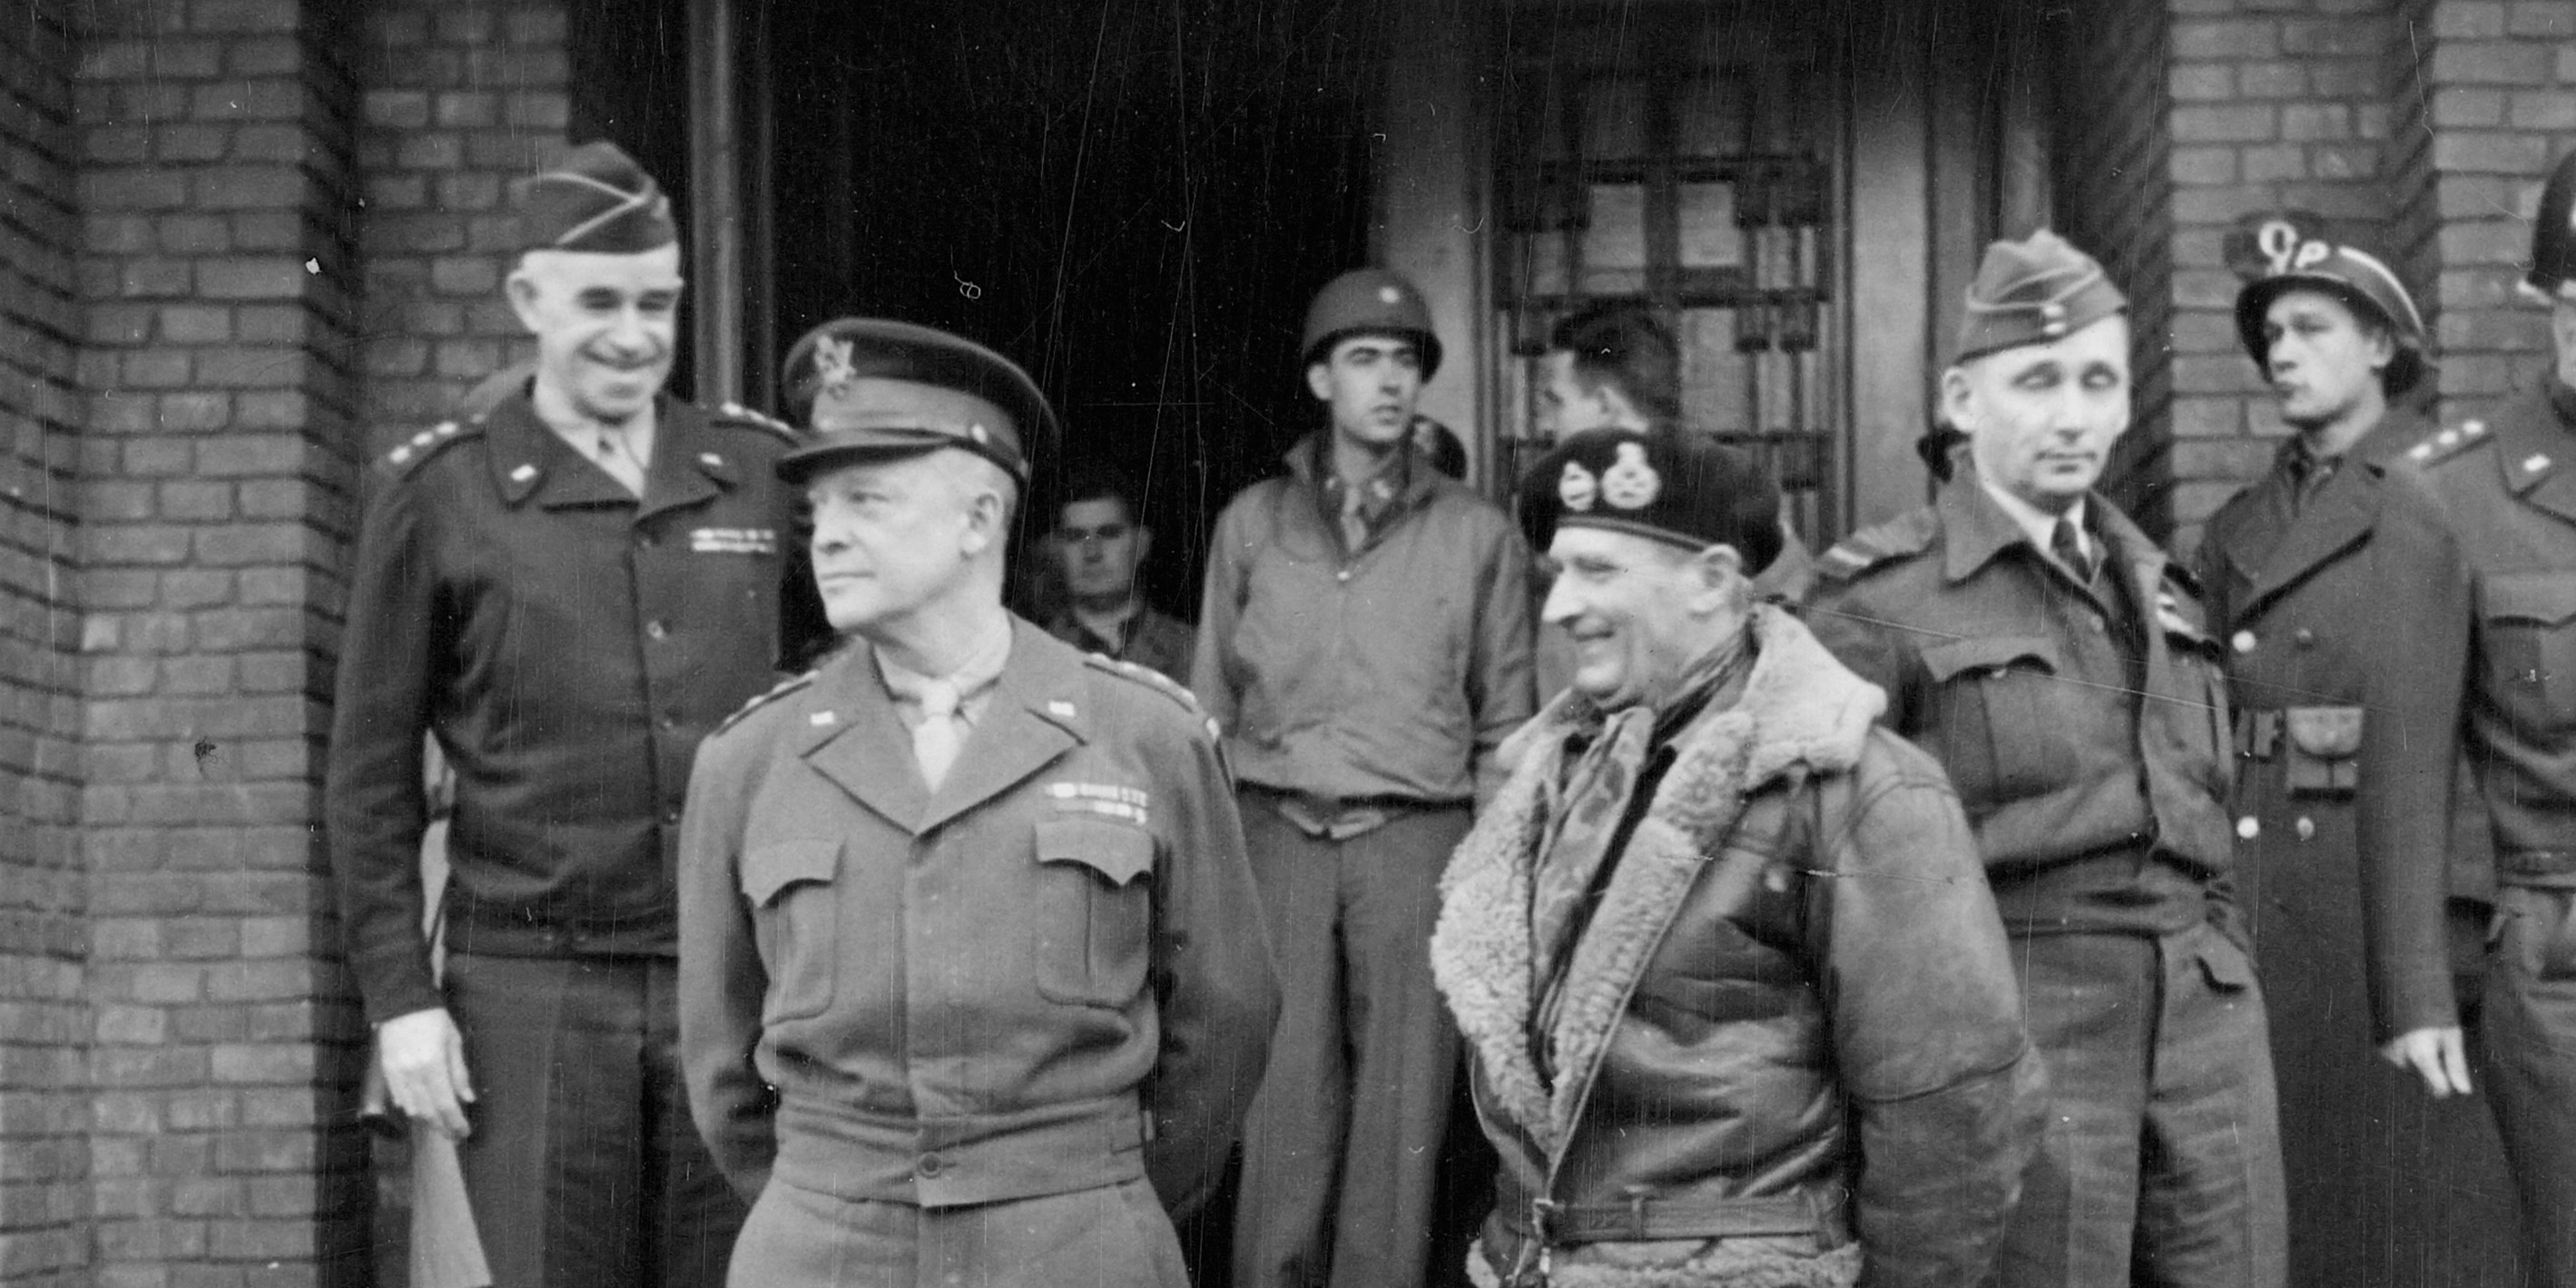 Allied commanders, including Generals Dwight Eisenhower and Bernard Montgomery, 1944